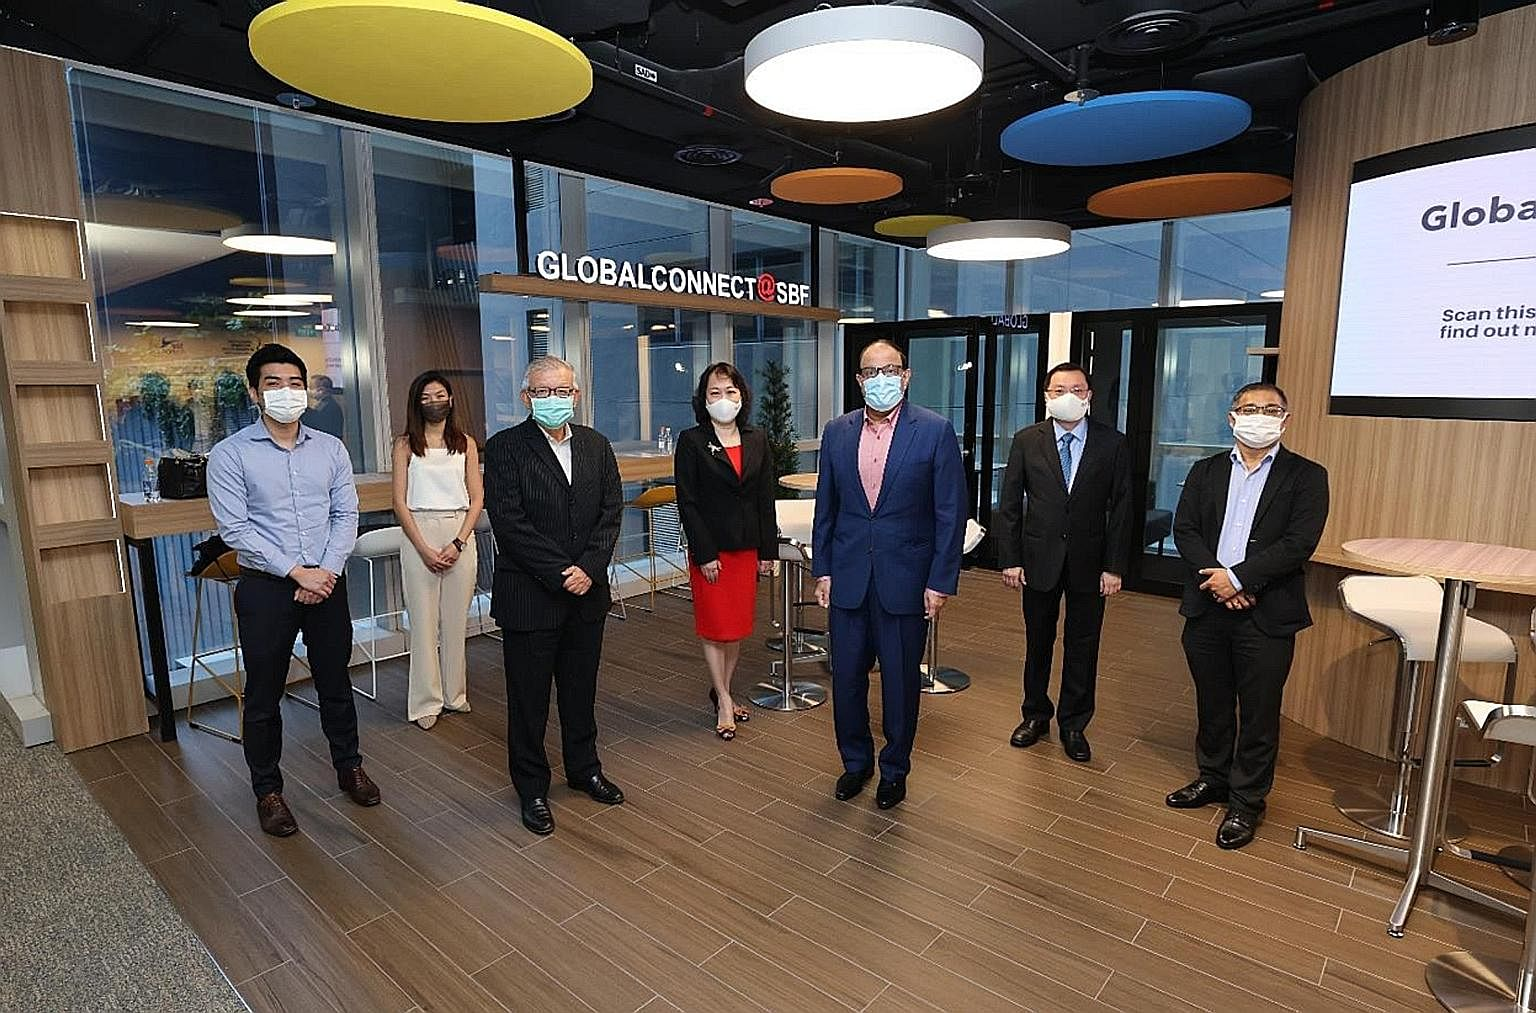 Minister for Communications and Information S. Iswaran (in blue suit) with Singapore Business Federation (SBF) office-bearers (from far left), Mr Collin Sim, assistant market development manager of Tee Yih Jia Food Manufacturing; Ms Priscilla Ng, mar